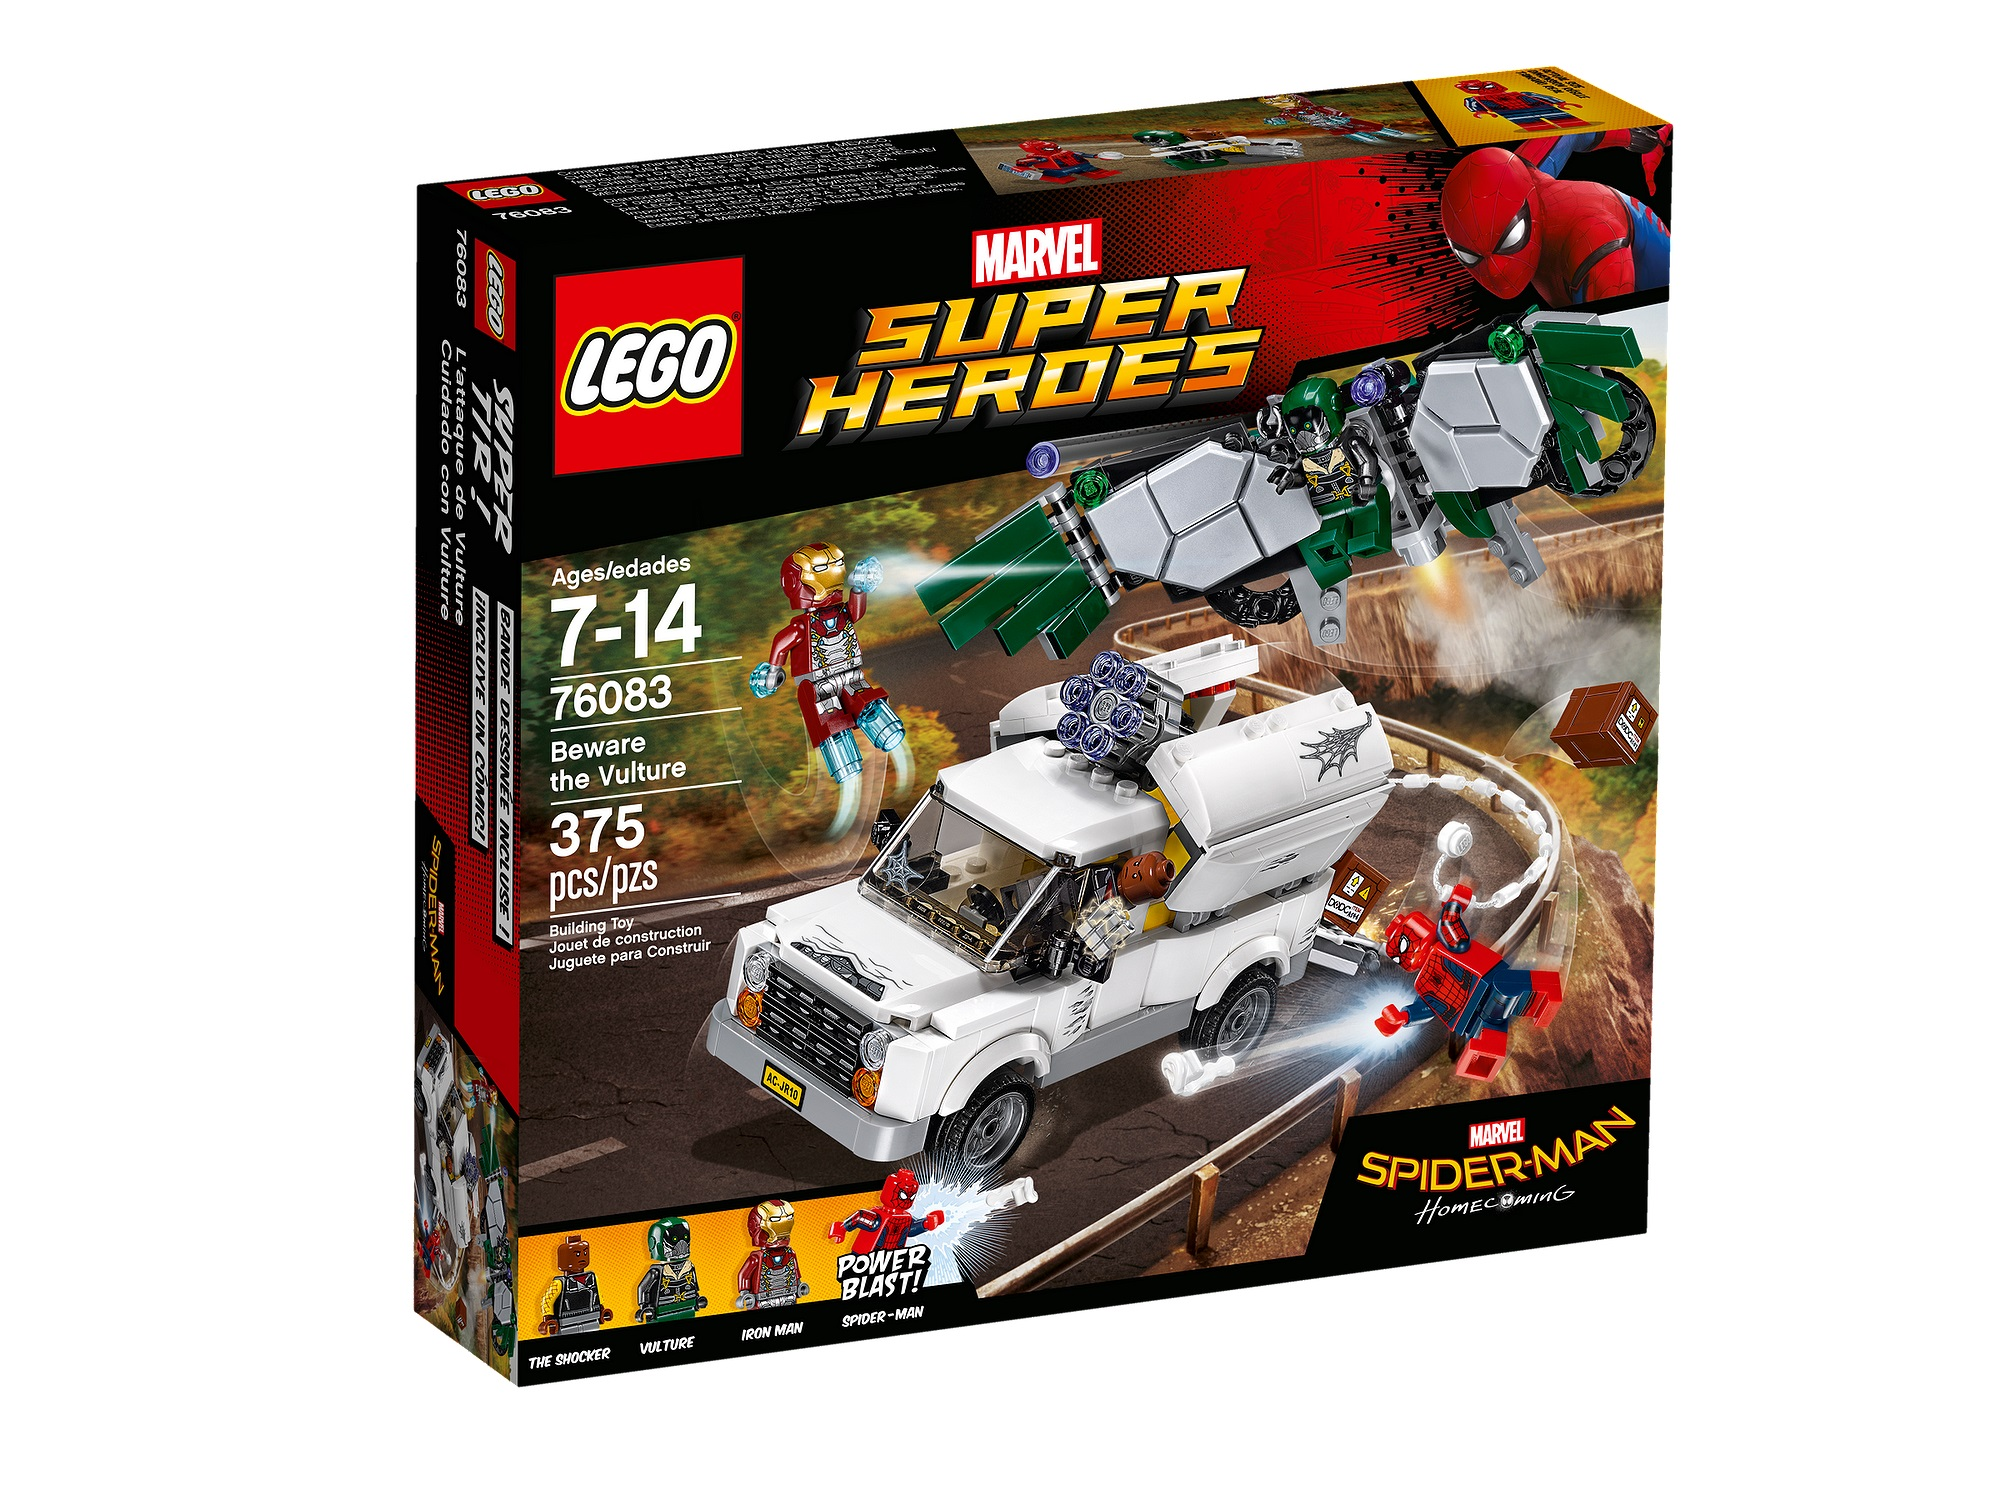 Review: LEGO 76083 Beware The Vulture – Jay's Brick Blog